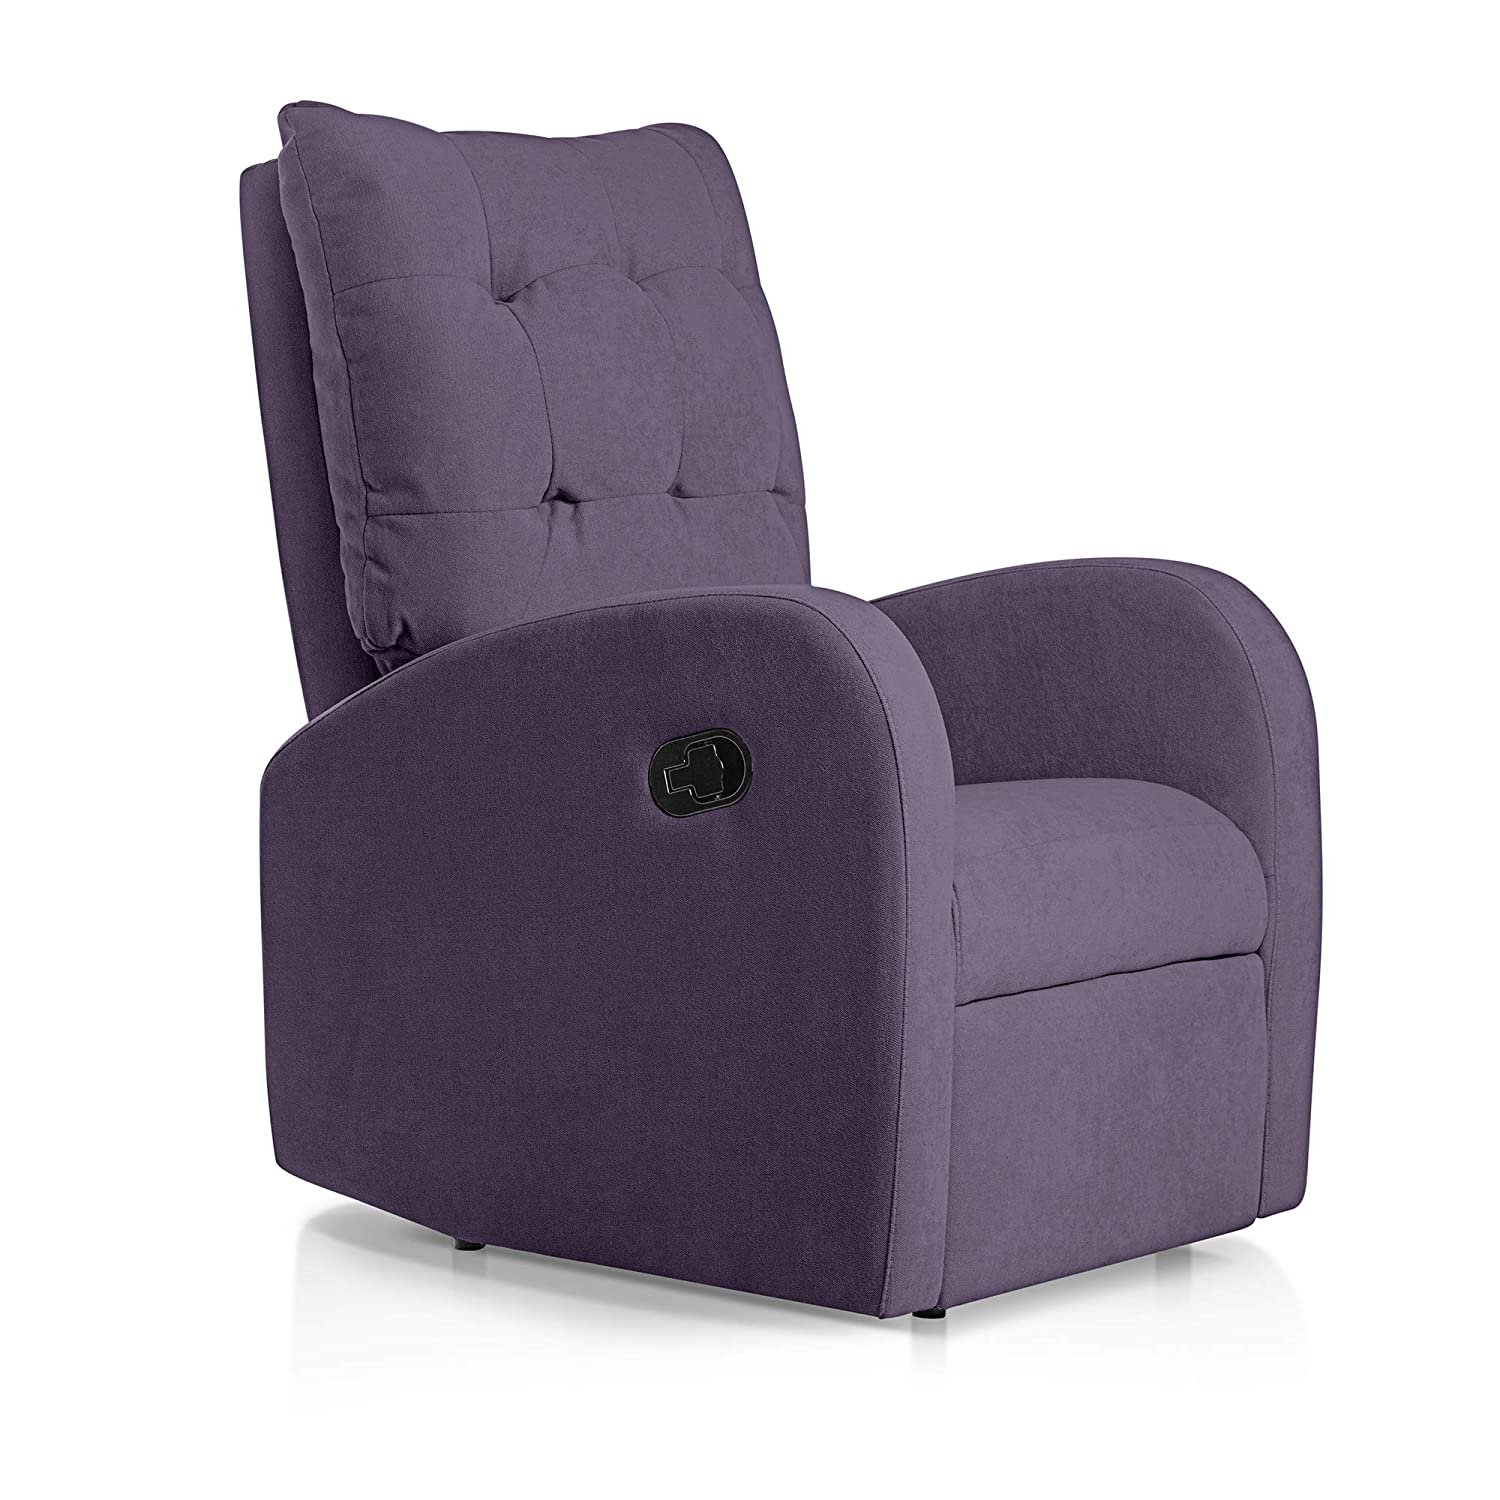 SUENOSZZZ-ESPECIALISTAS DEL DESCANSO Sillon Relax reclinable Soft tapizado Tela Antimanchas Color Lila | Sillon reclinable butaca Relax | Sillon ...